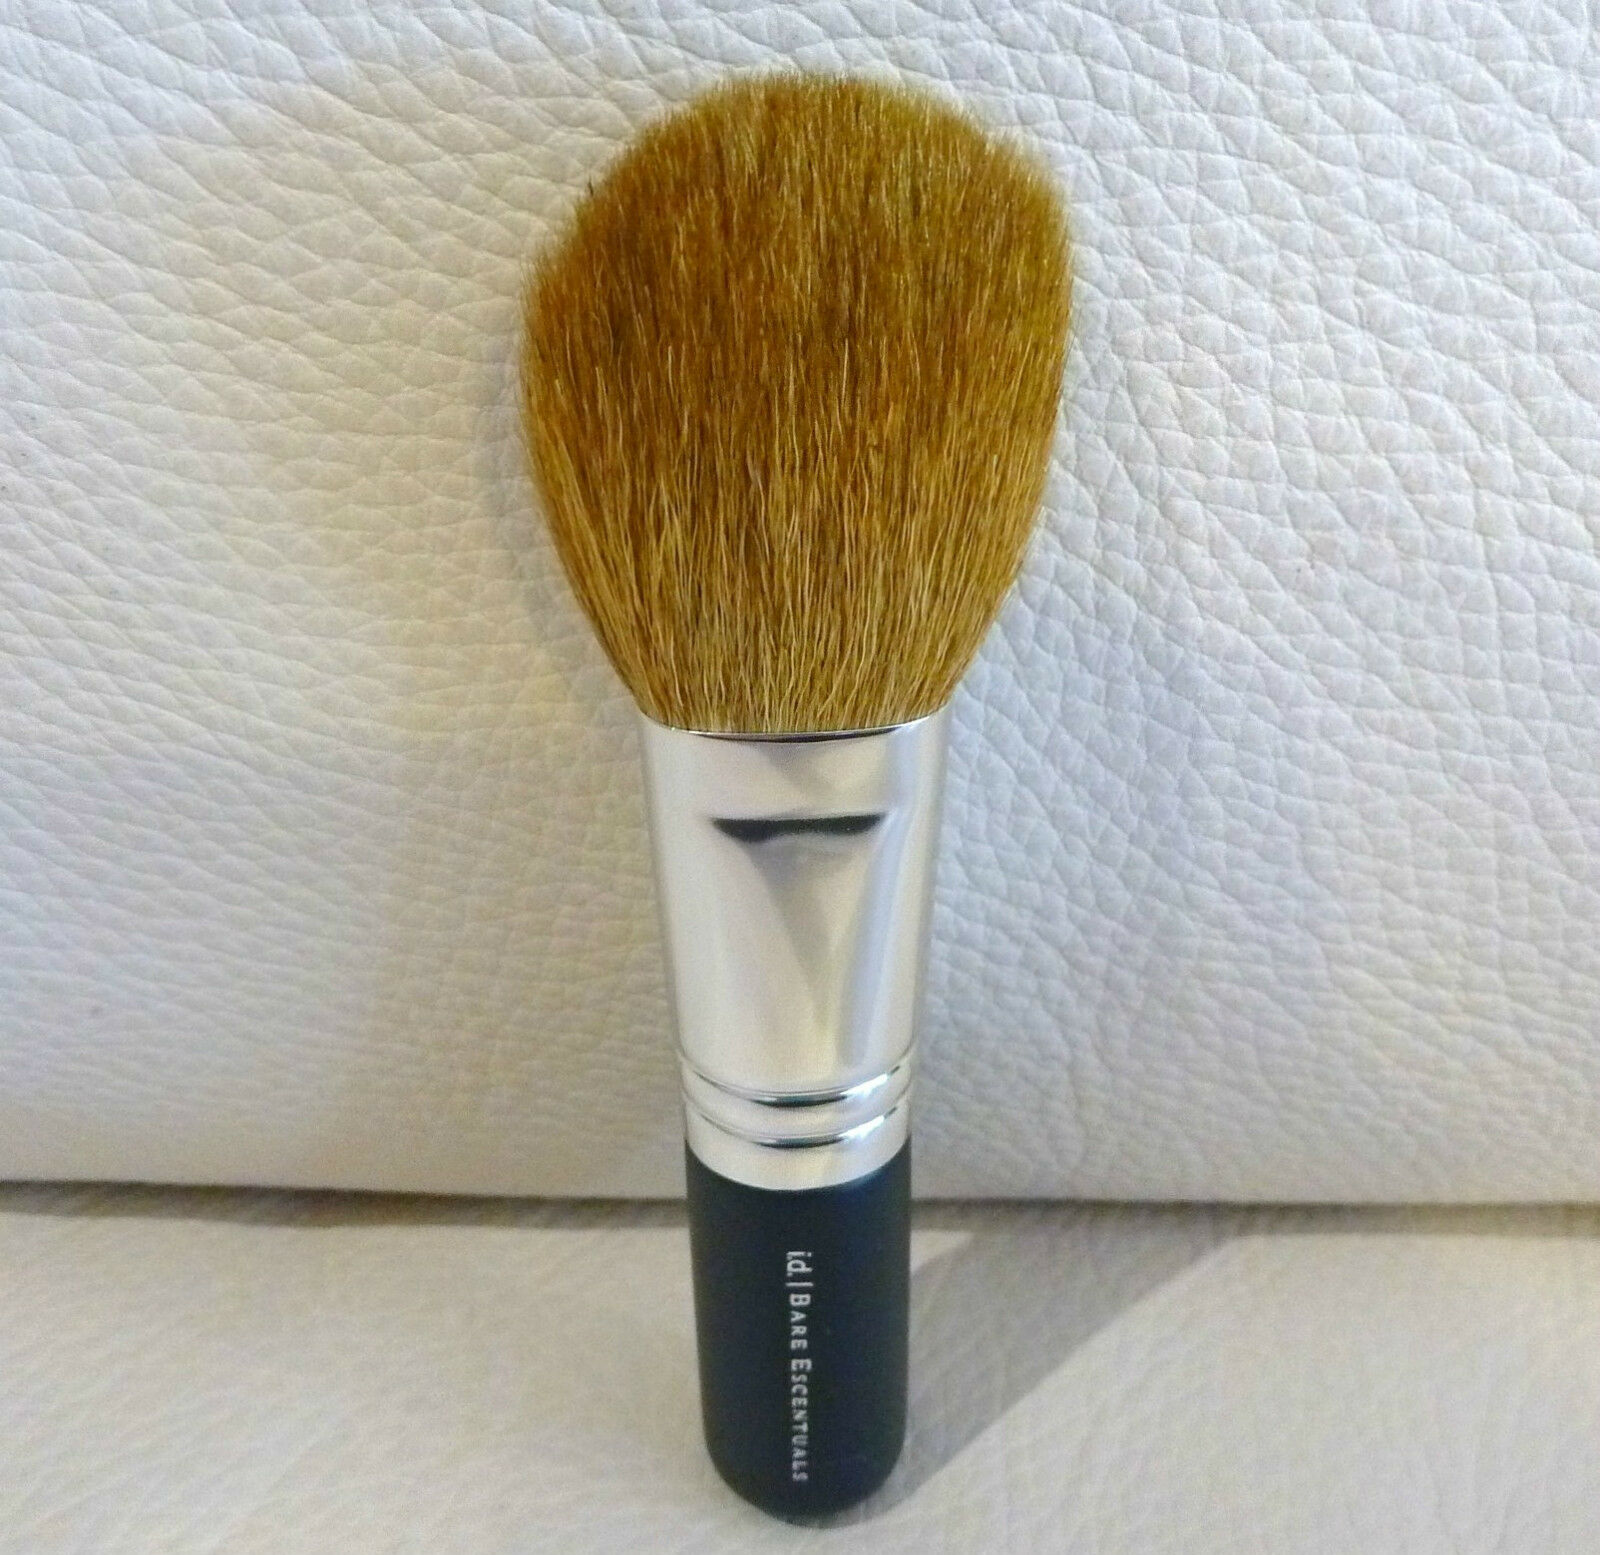 purchase-bare-escentuals-flawless-facial-brush